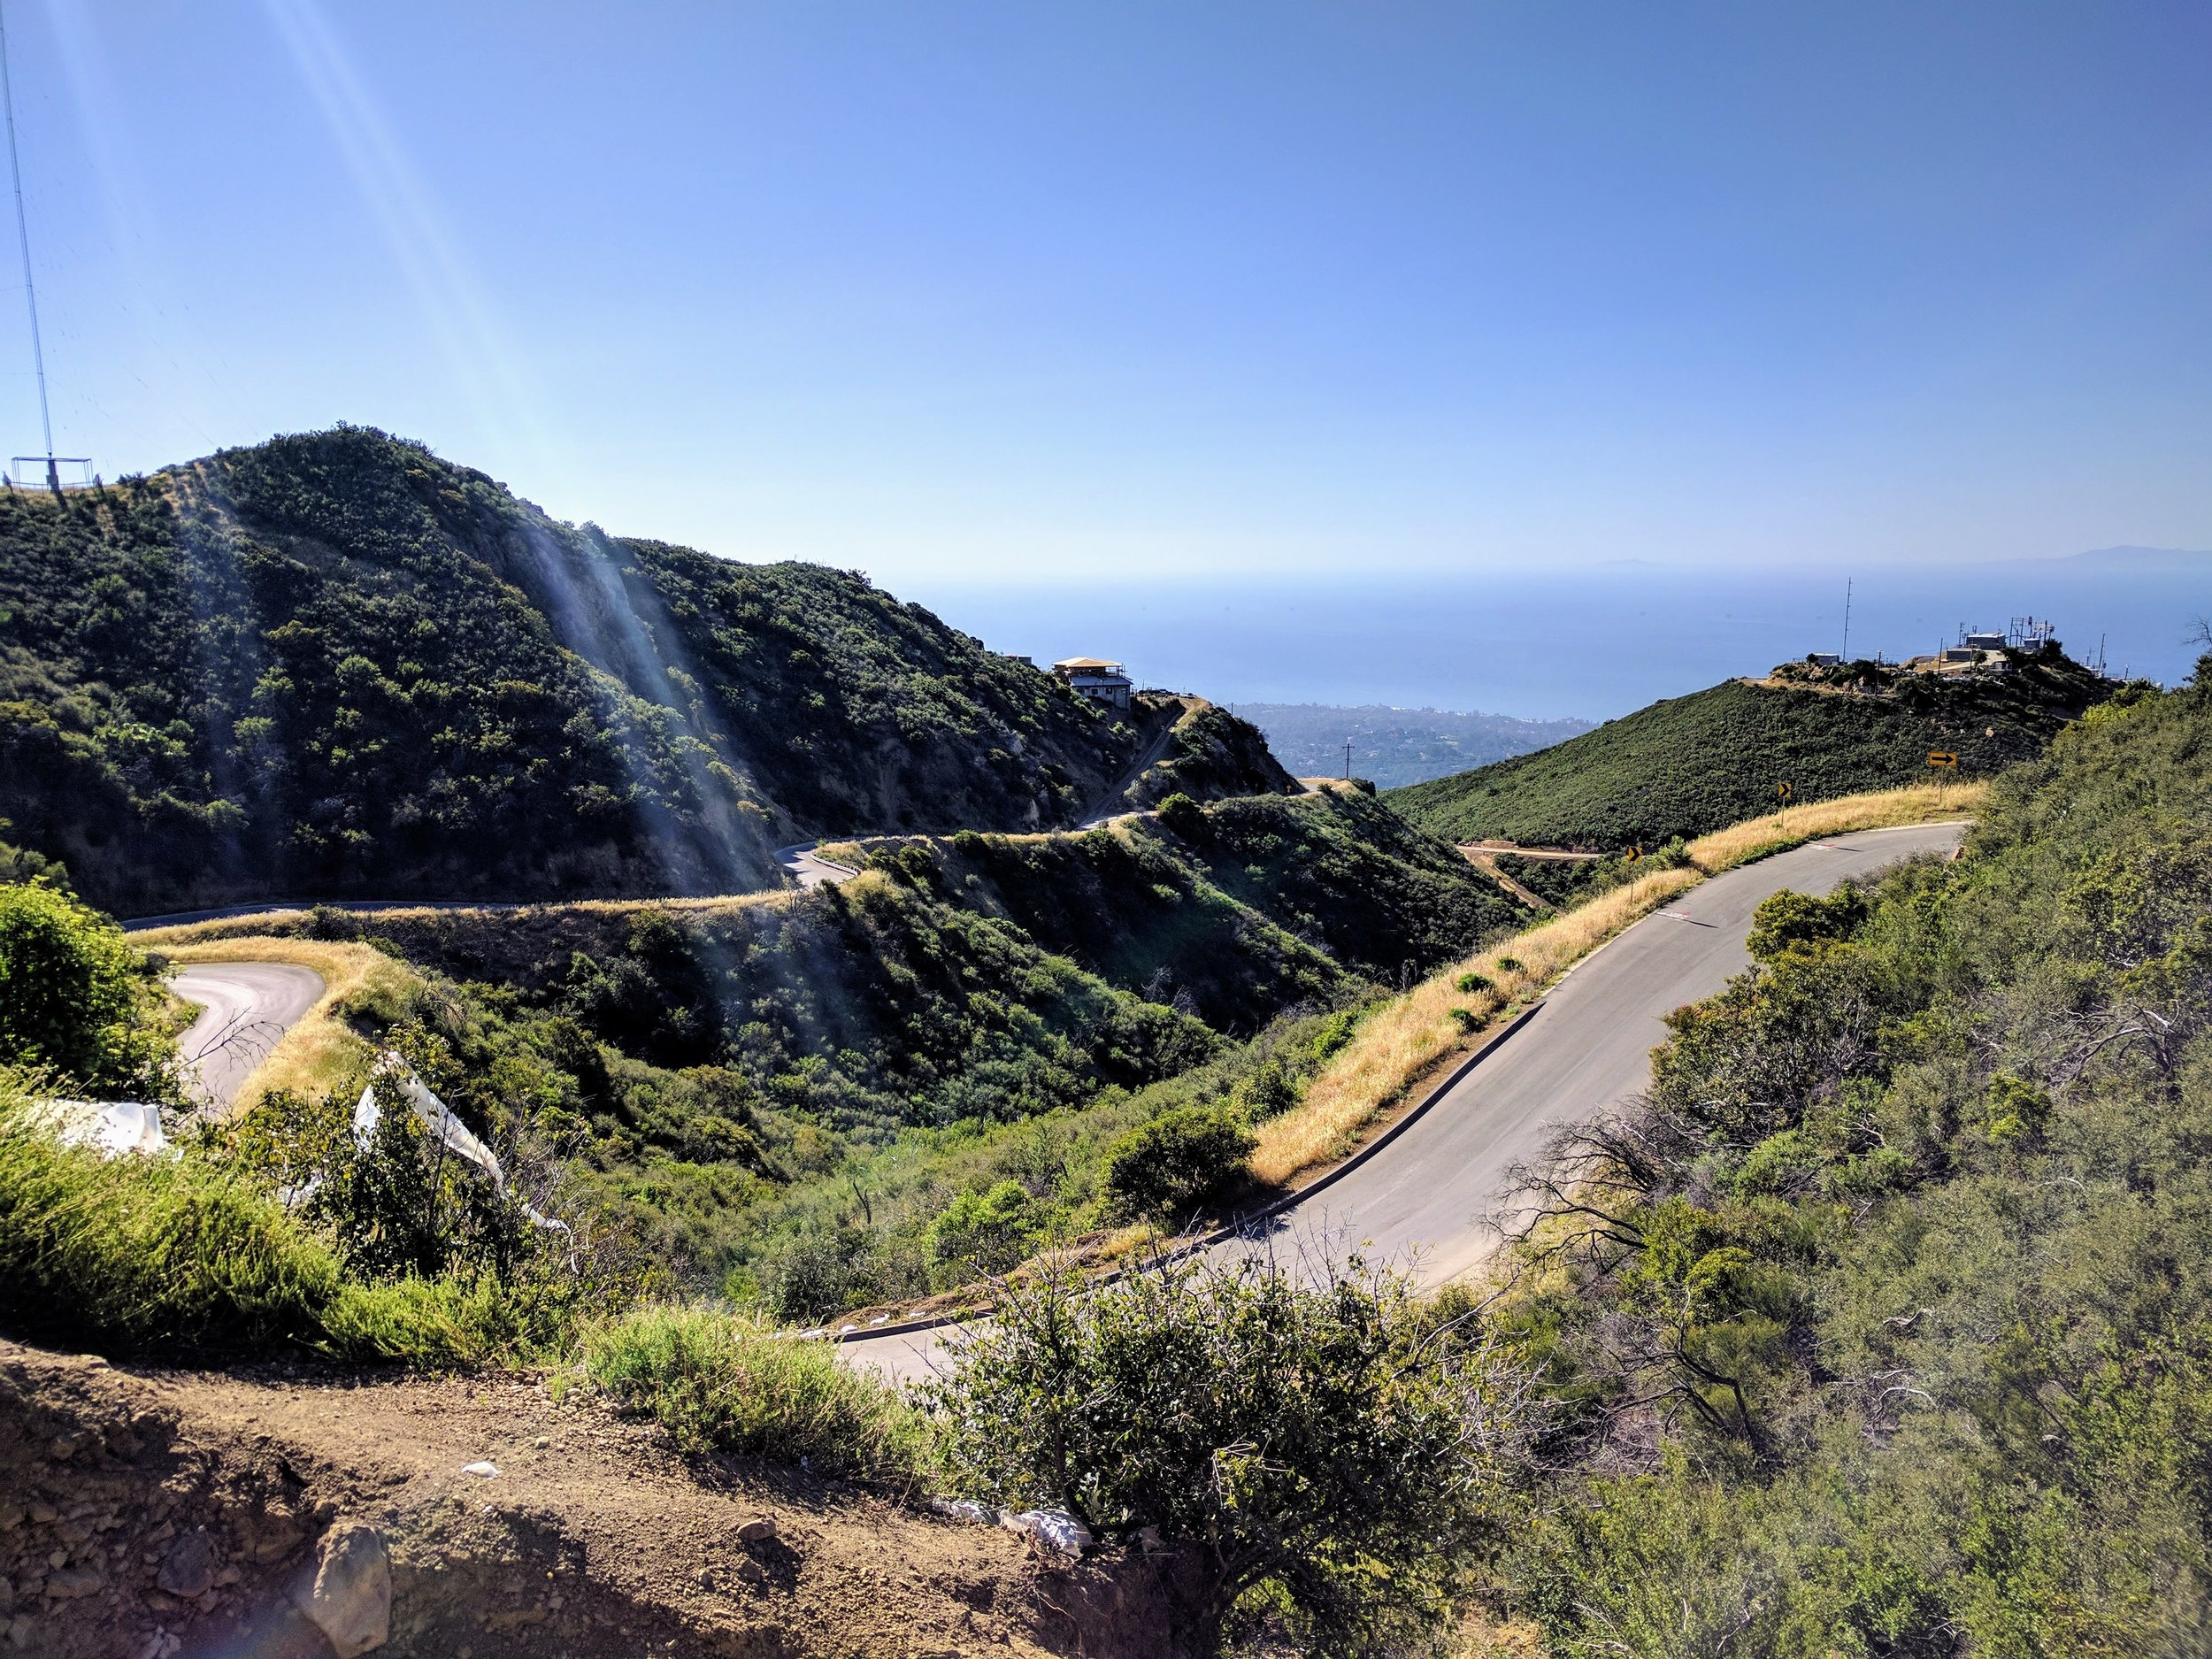 The epic Gibraltar Road climb to La Cumbre Peak